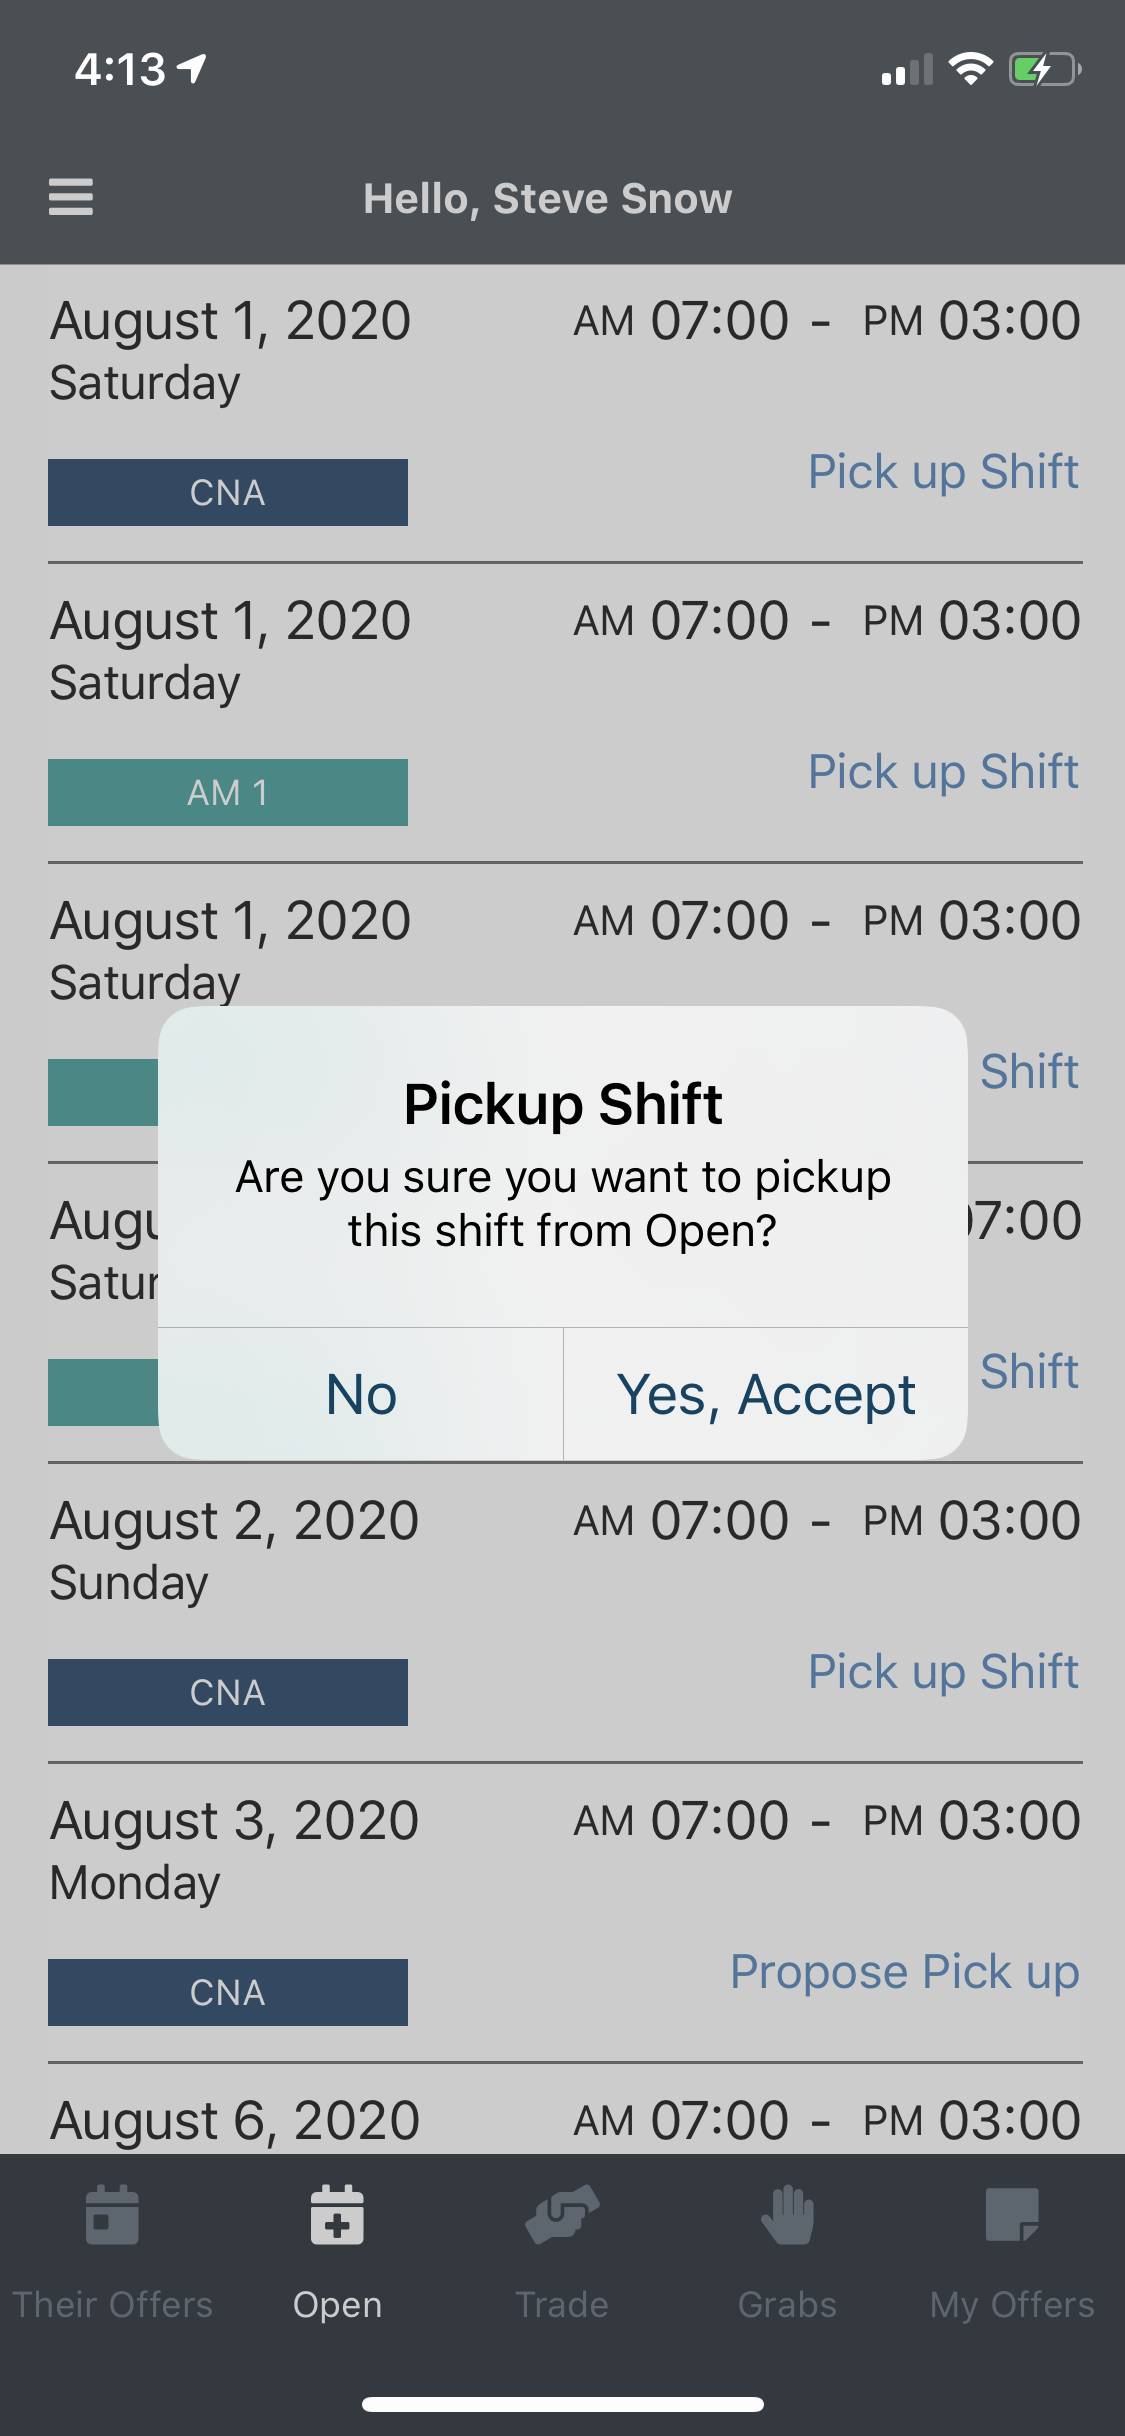 EasyShifts Software - Employees can pick up open shifts